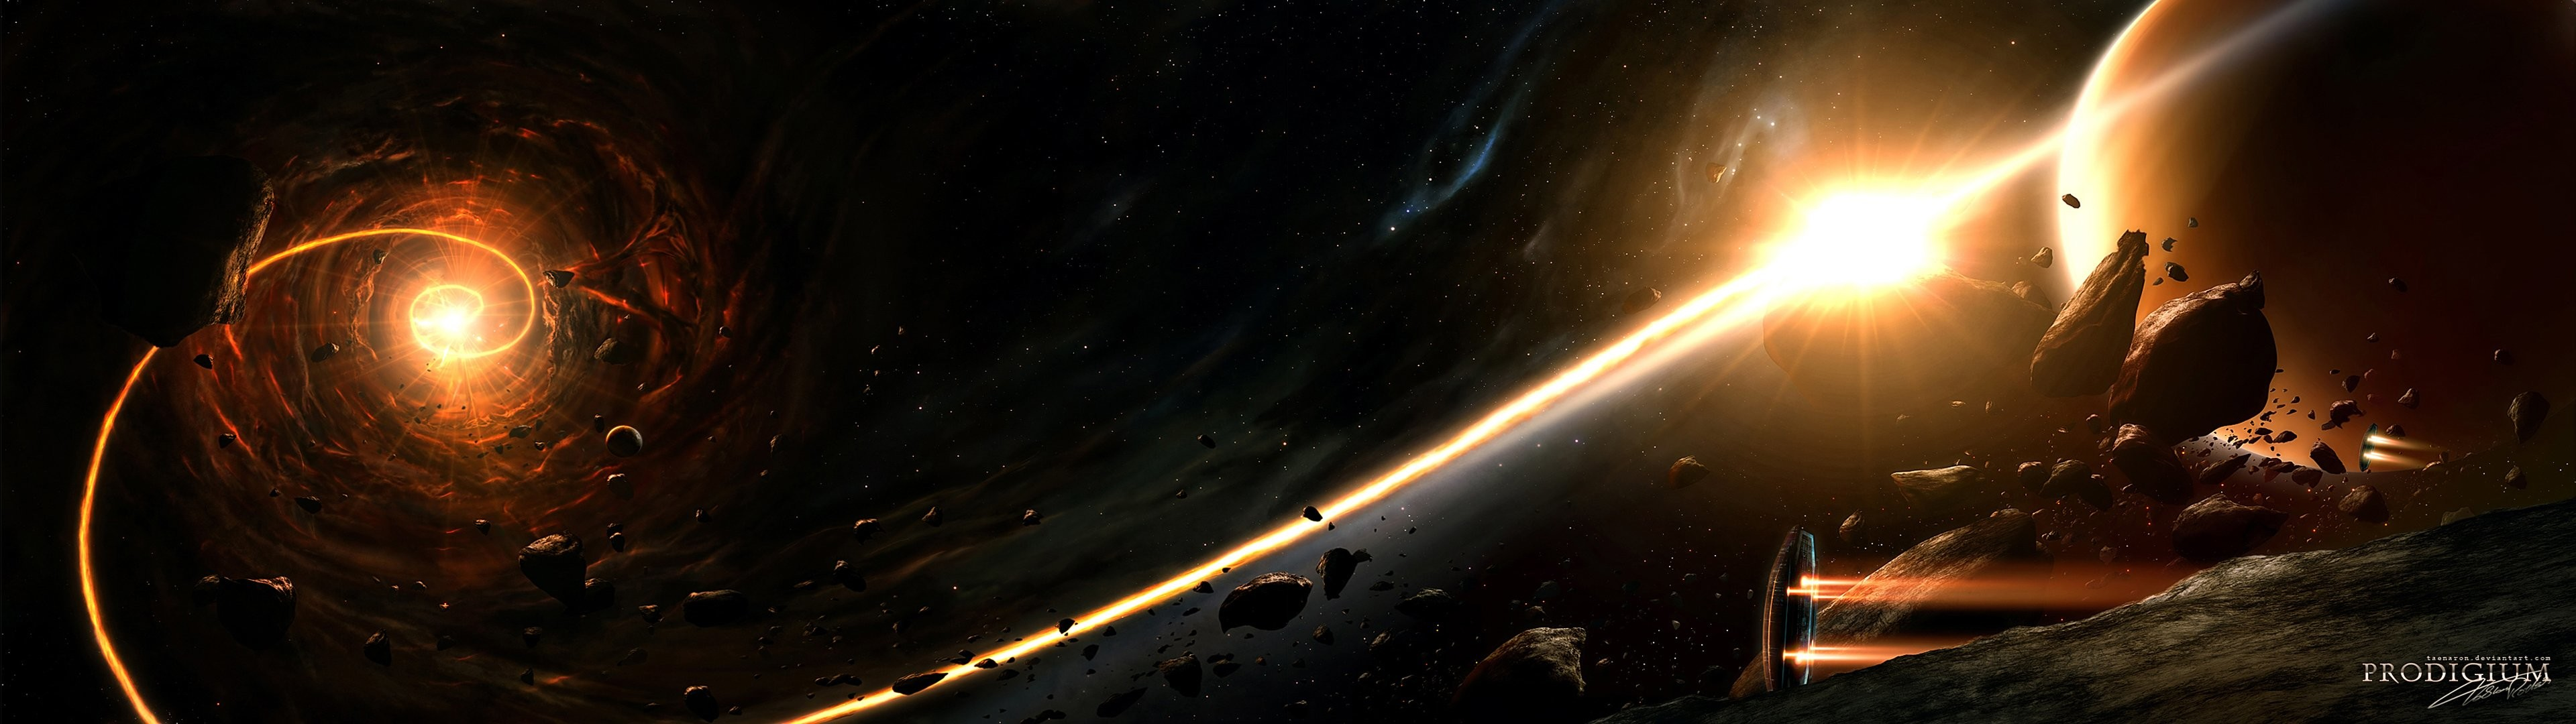 outer space planets wallpaper     329246   WallpaperUP .